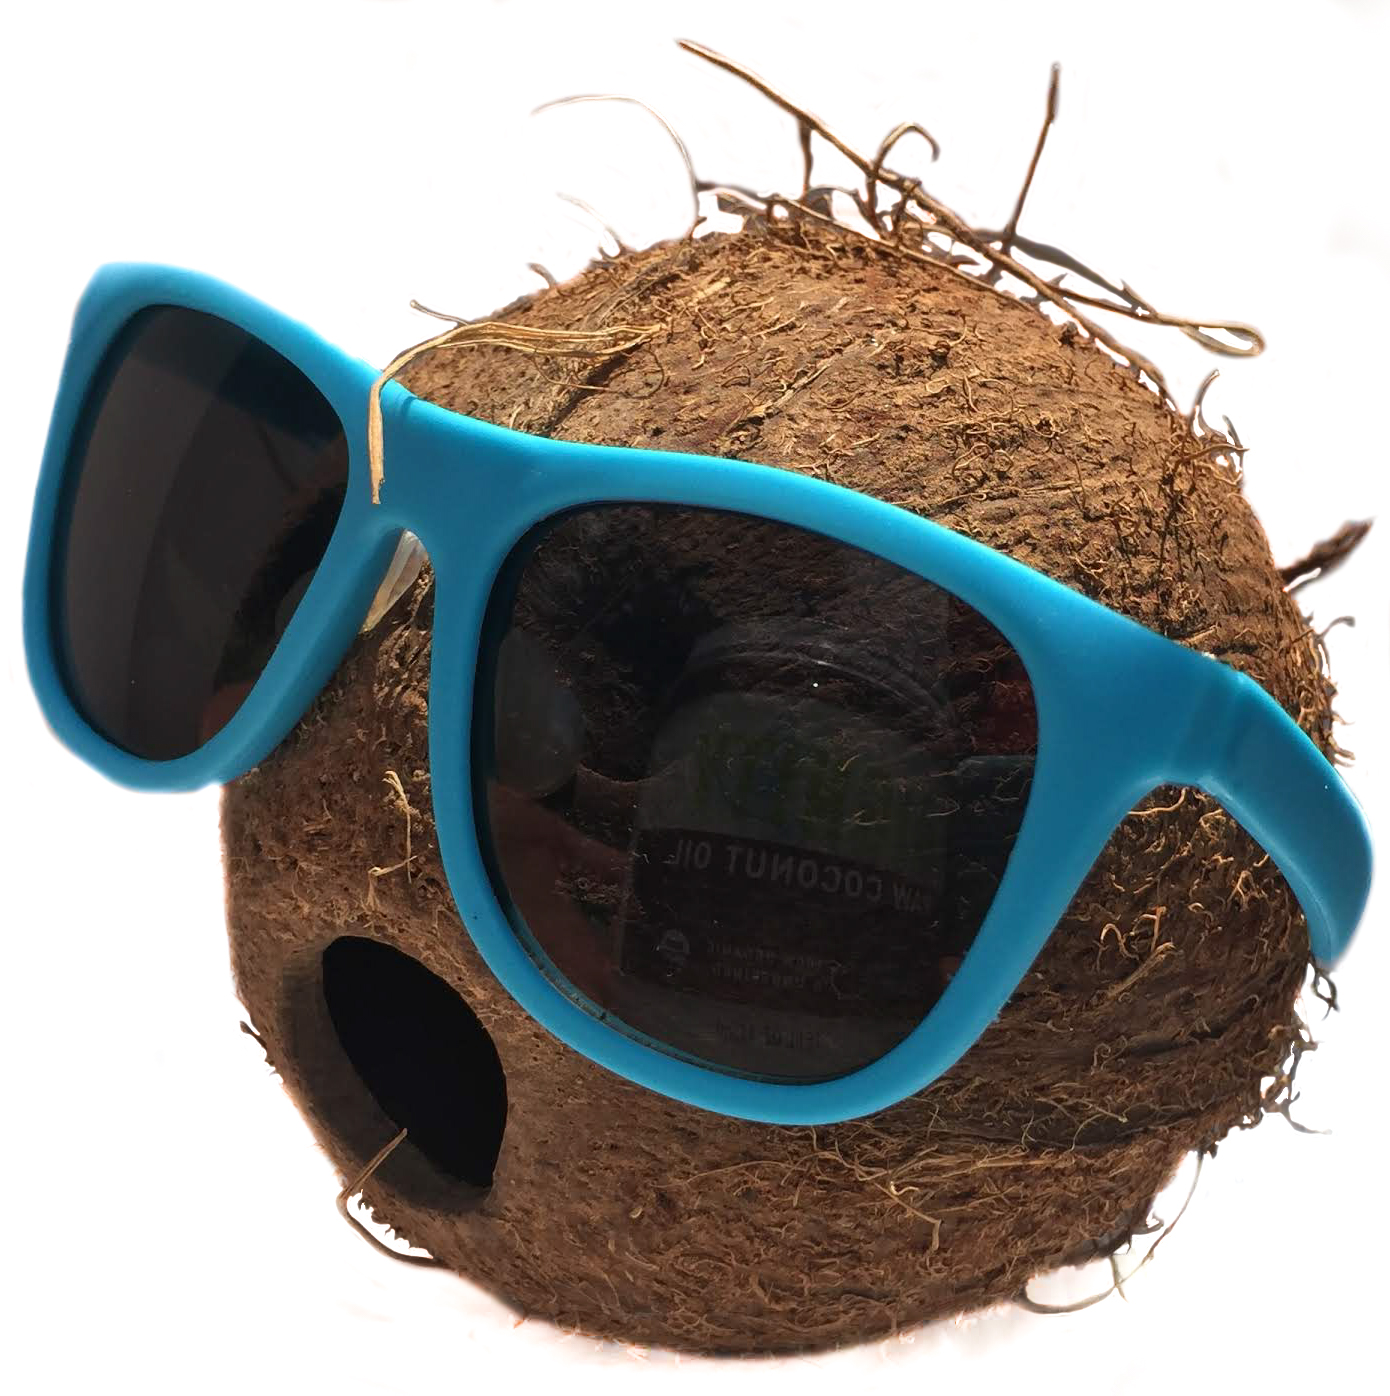 Dignity_Coconut_with_Sunglasses.jpg